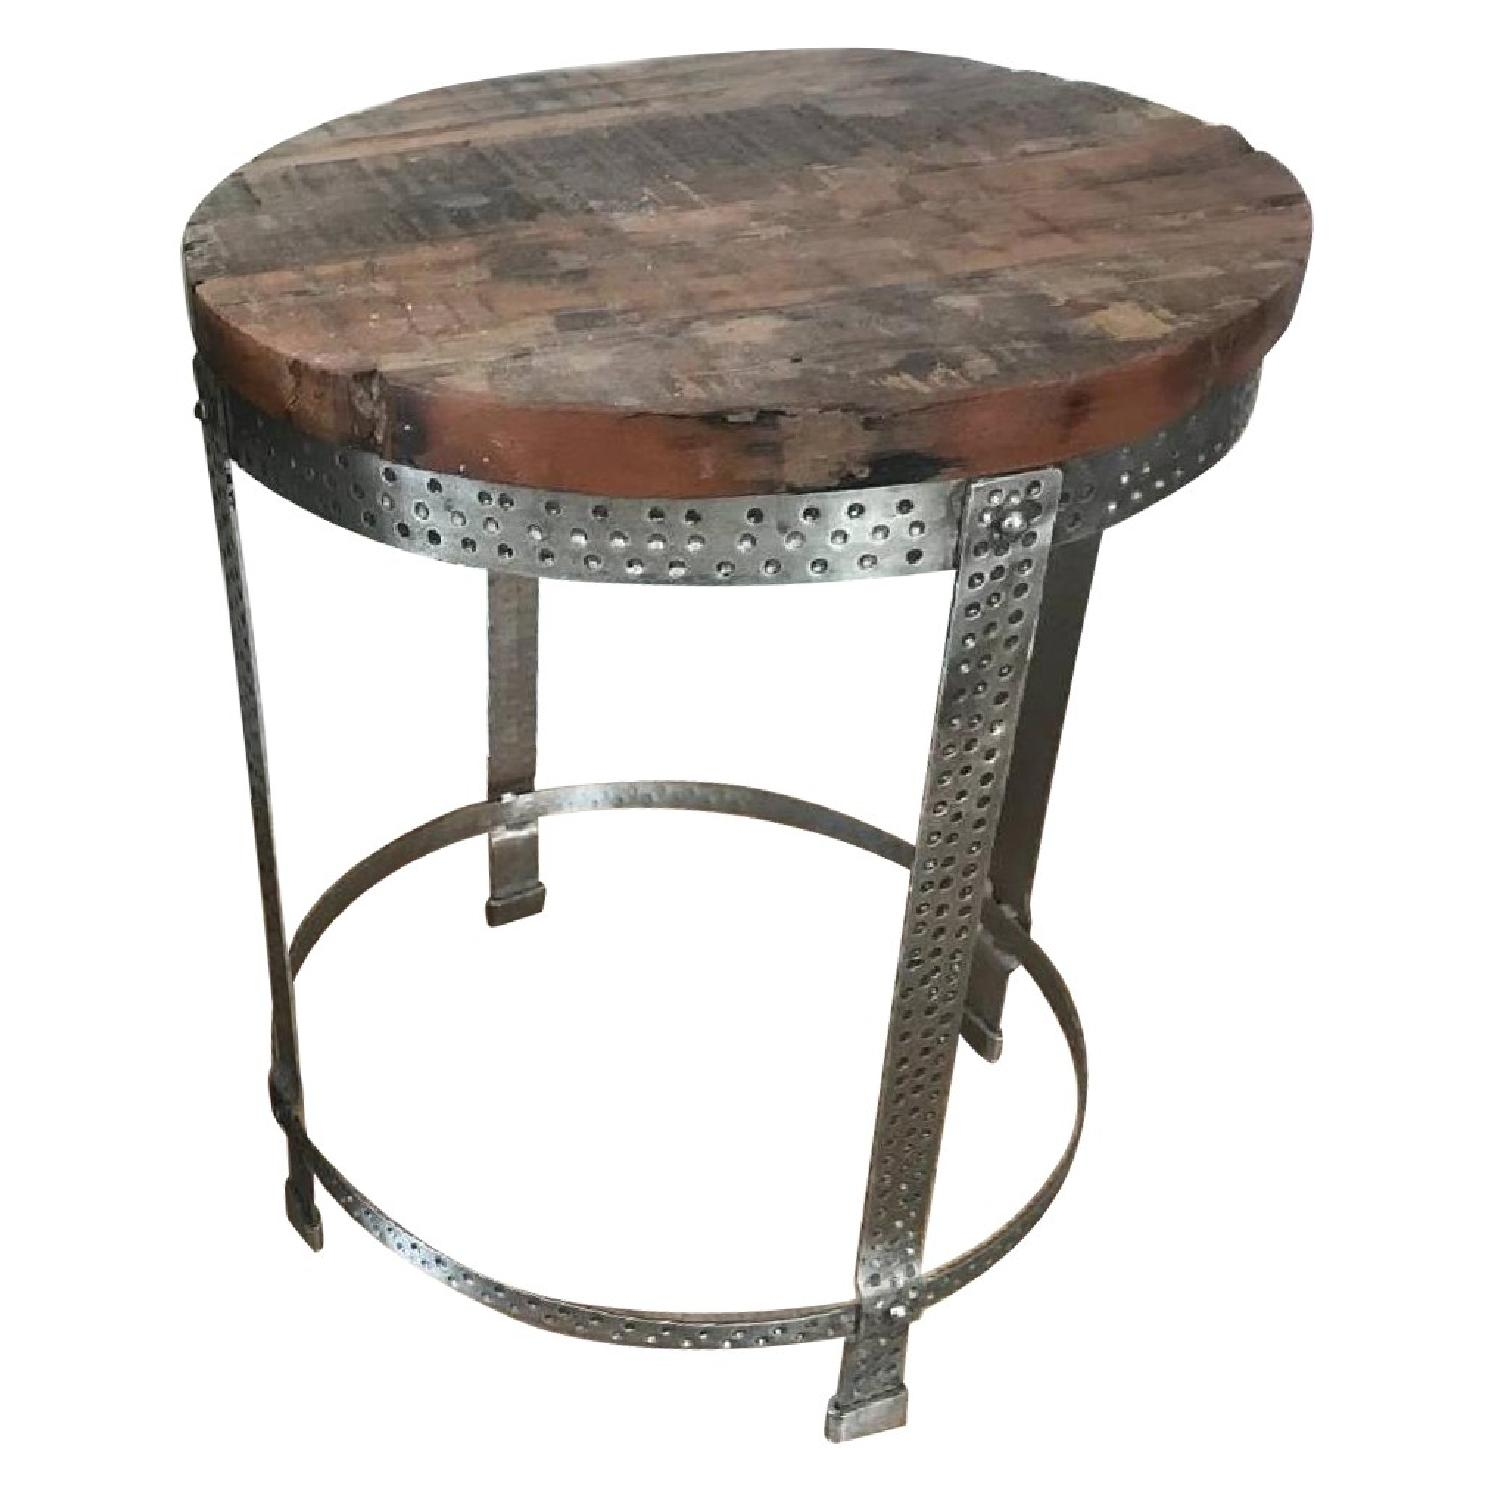 Vintage Salvaged Wood Hammered Metal Side/Night Tables